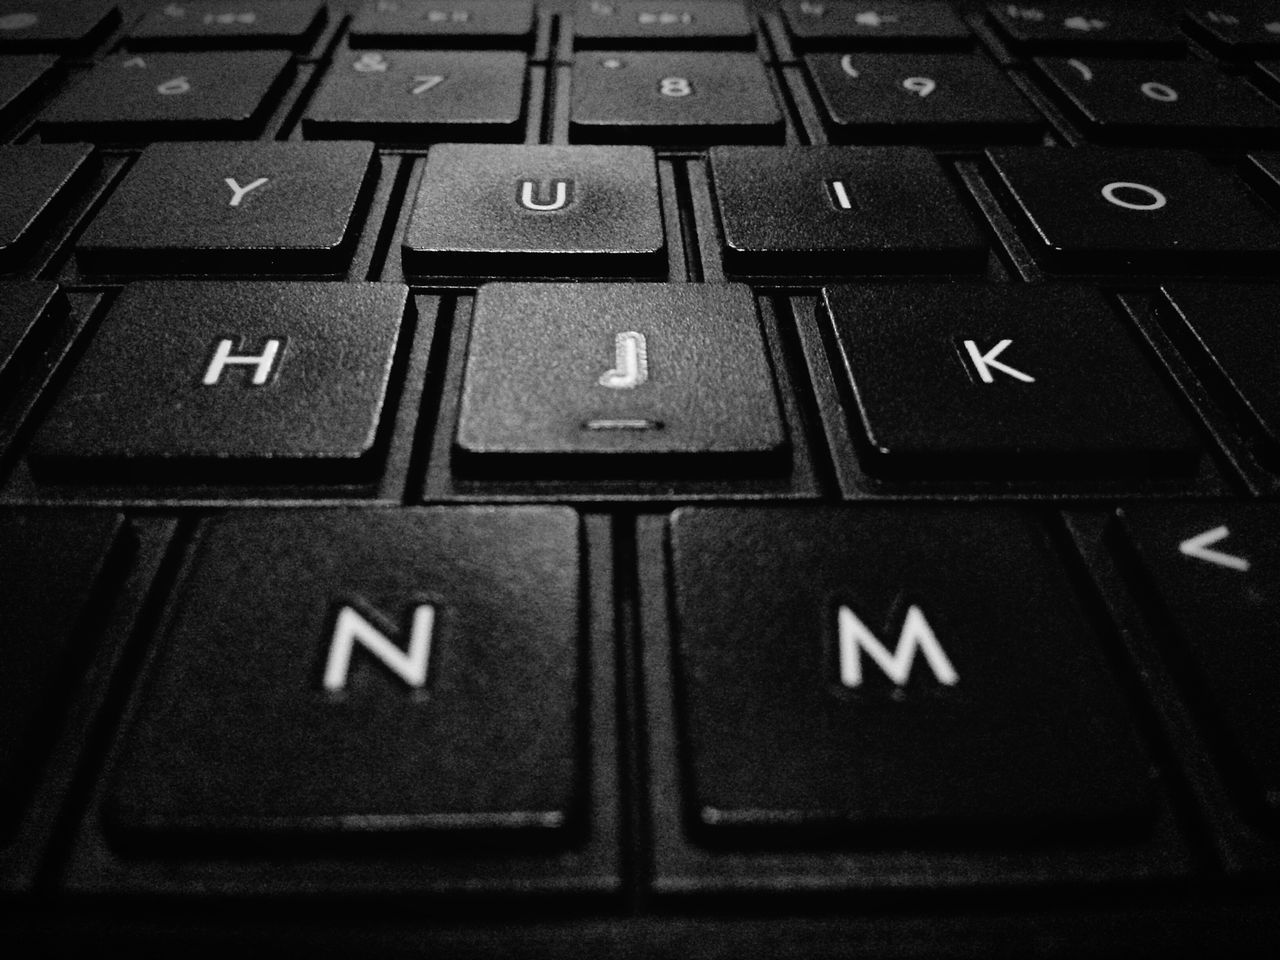 alphabet, keyboard, convenience, computer key, technology, computer keyboard, no people, full frame, backgrounds, connection, text, close-up, computer, indoors